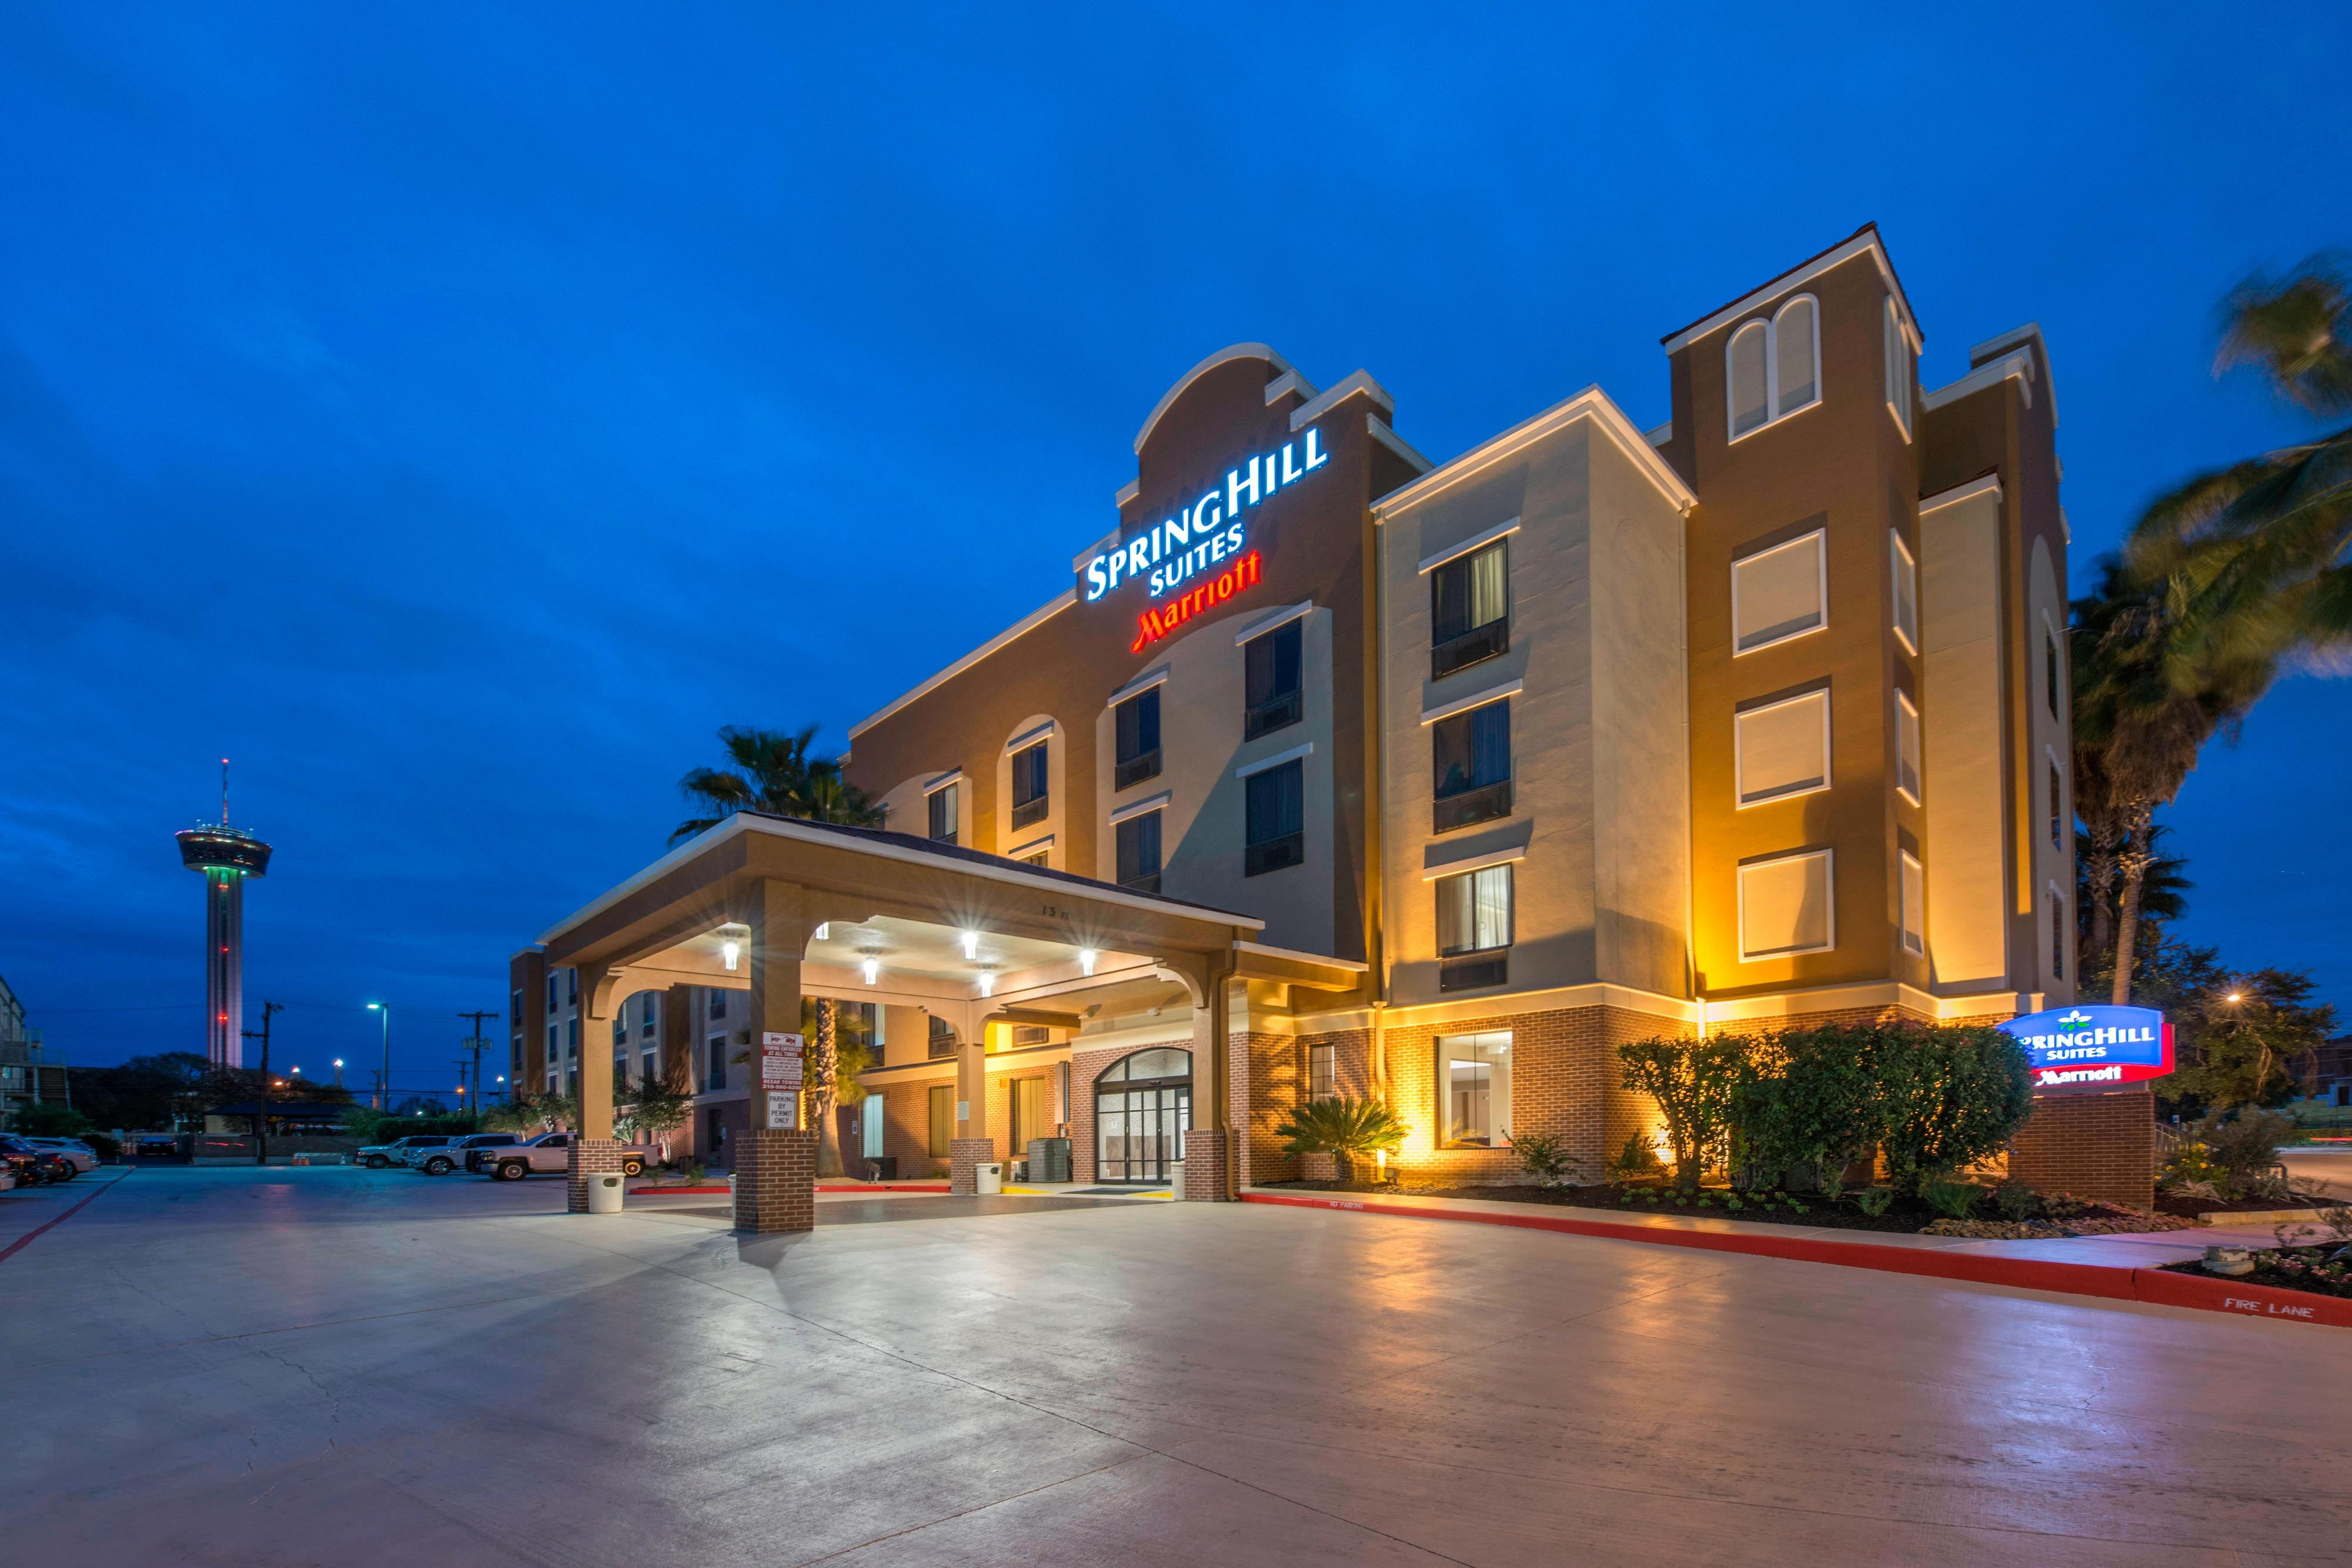 SpringHill Suites Marriott San Antonio